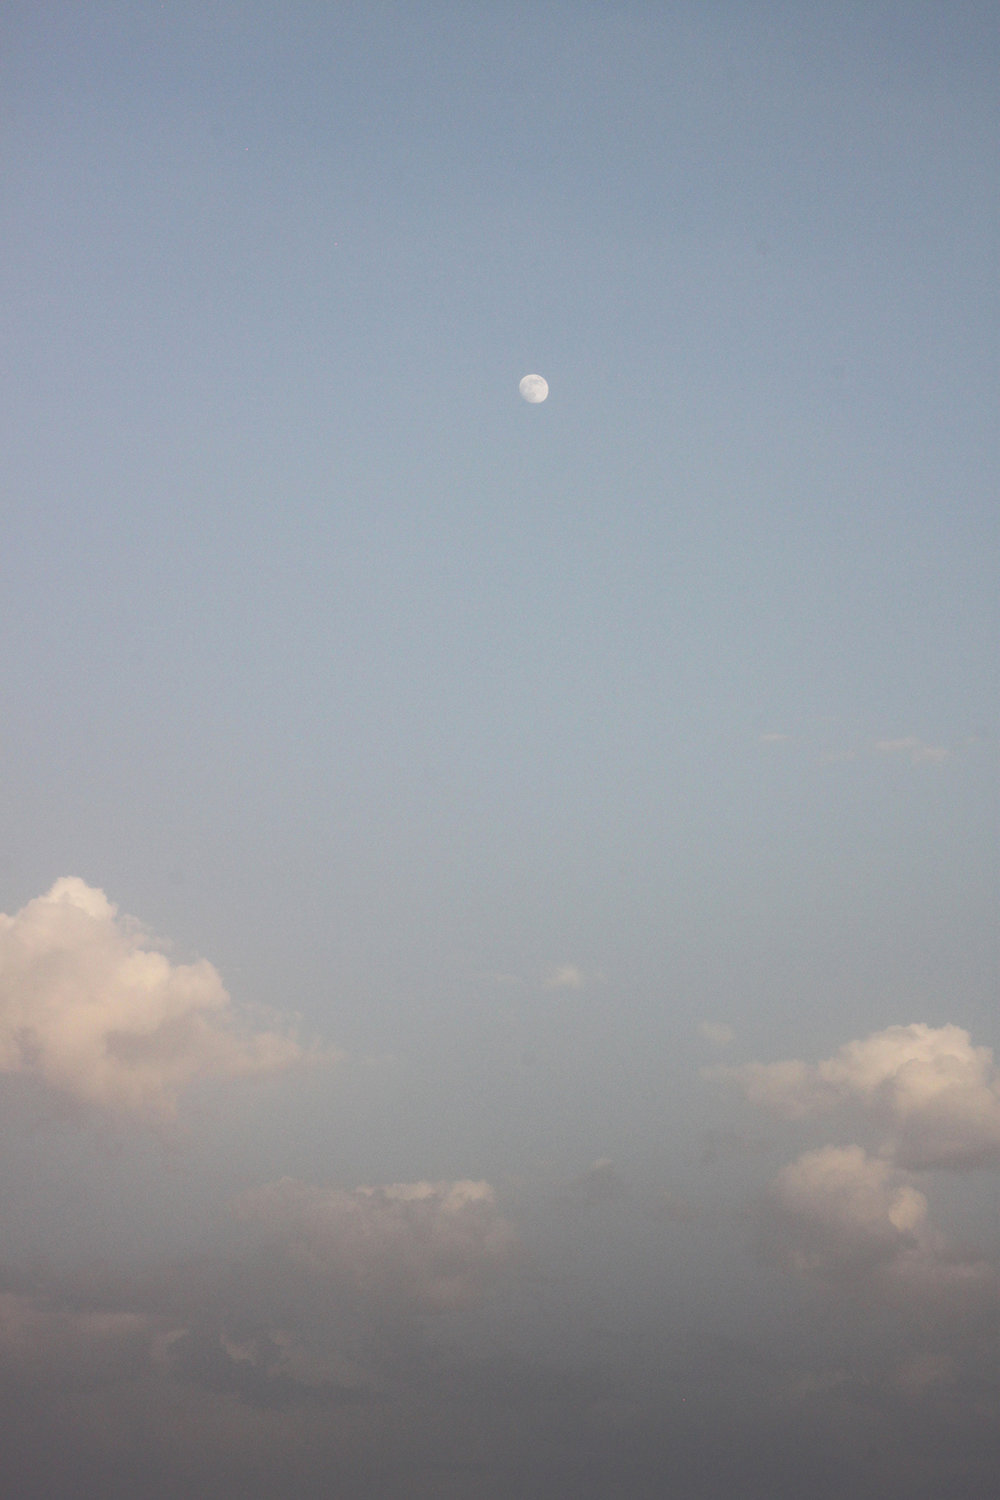 Bea Rue Professional Photographer Dreamy Painterly Moon in Blue Sky Clouds.jpg